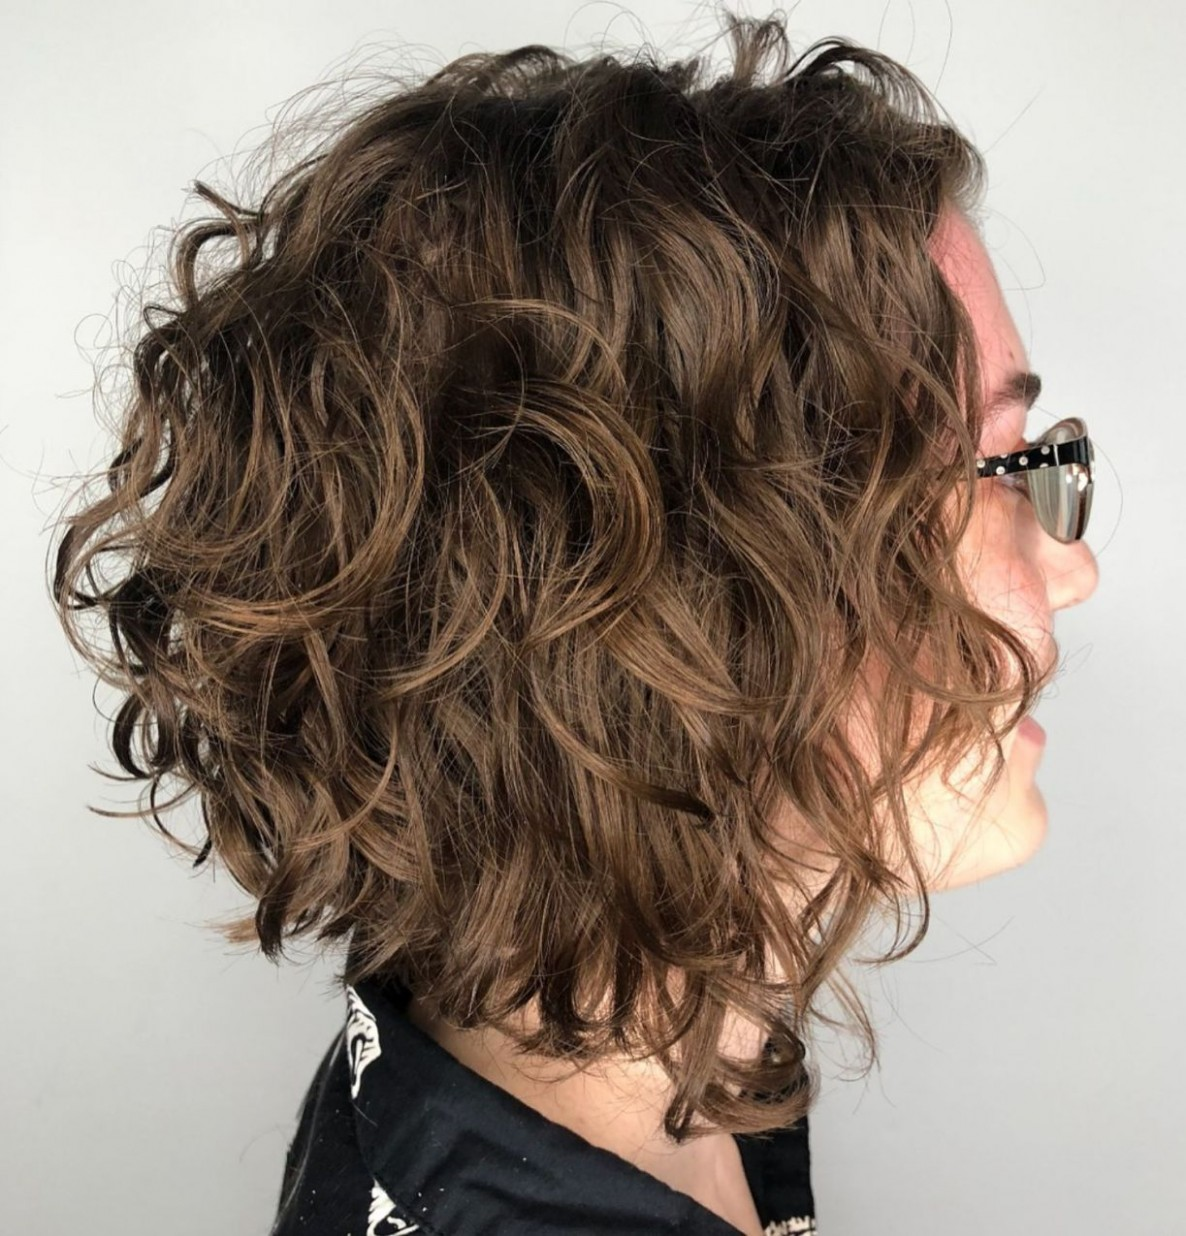 Scrunched Curly Inverted Bob Curly Hair Styles Naturally, Curly Inverted Bob Curly Hair